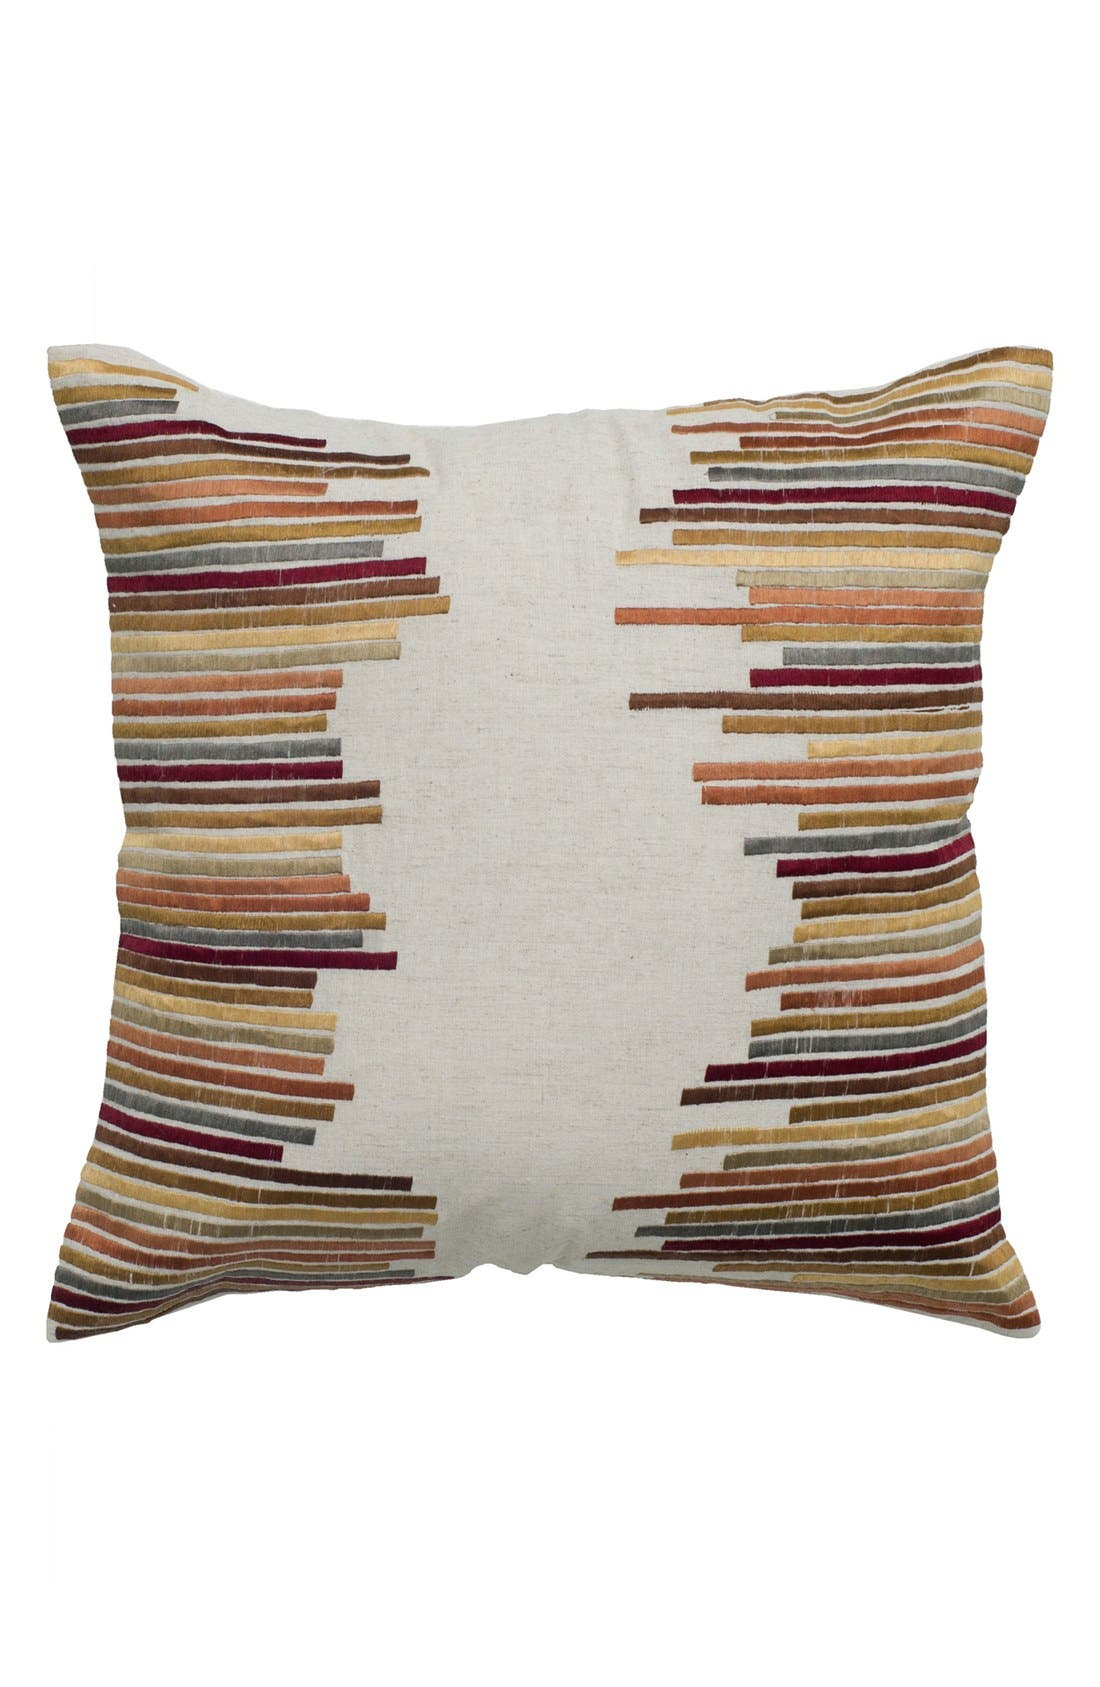 'Jagged Stripe' Pillow,                             Main thumbnail 1, color,                             250